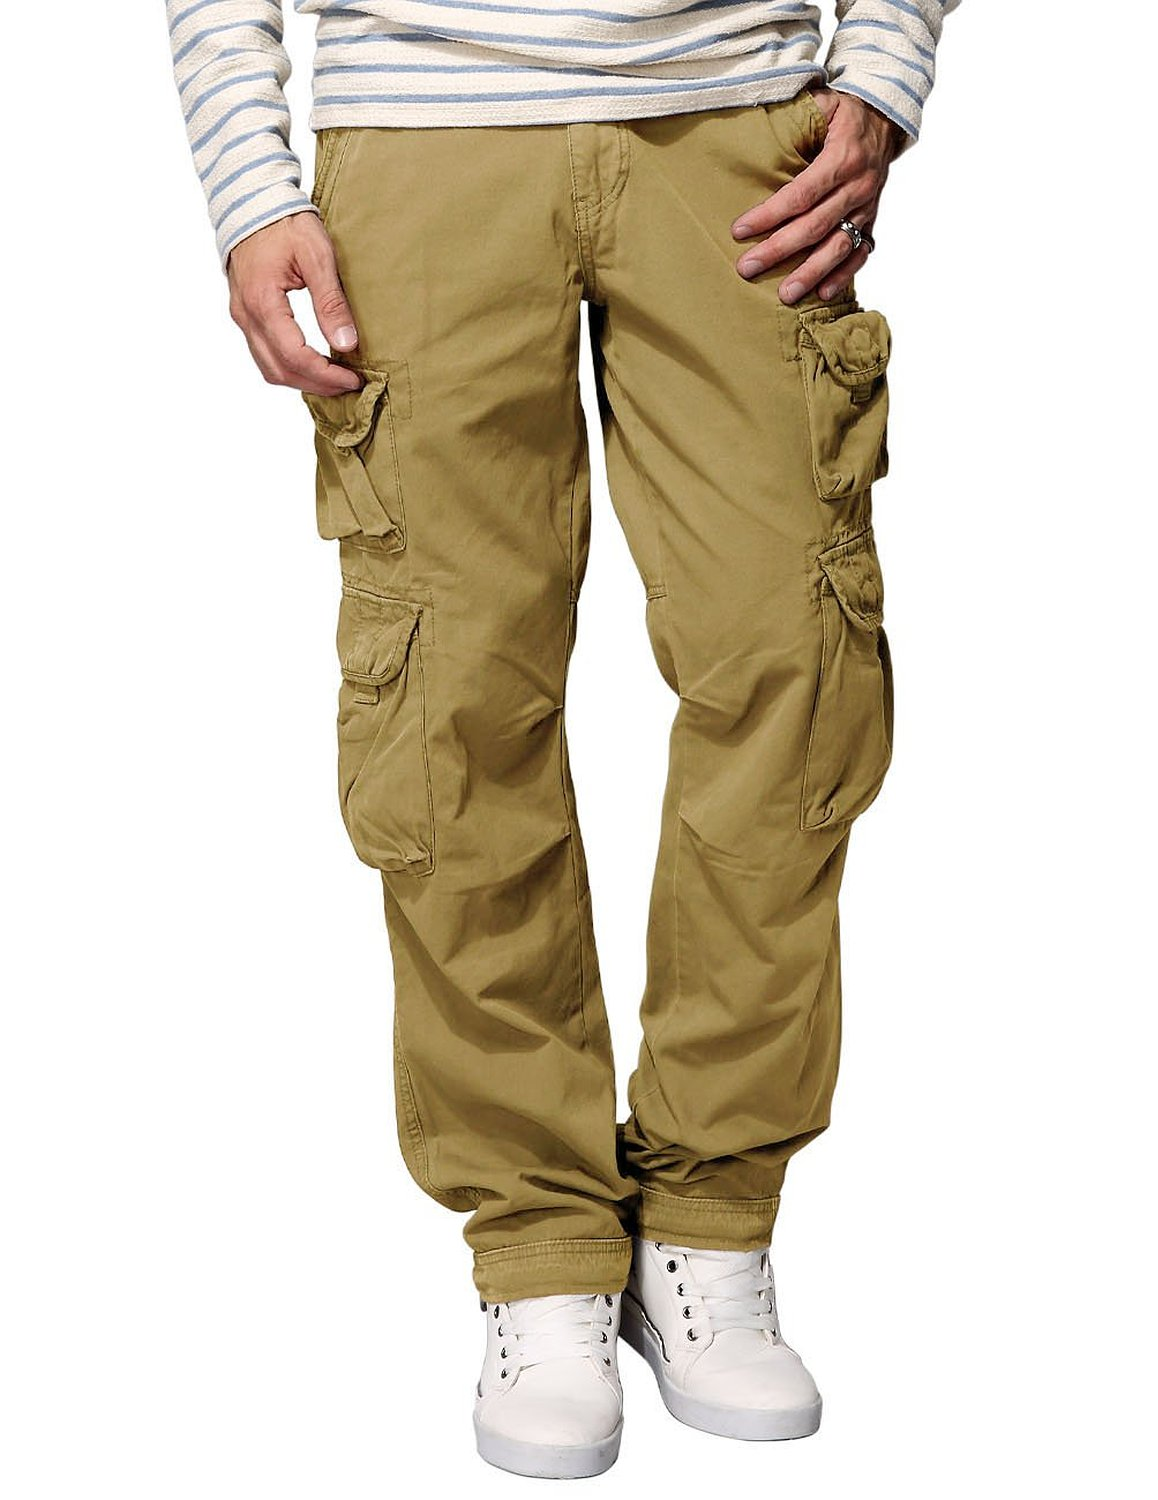 Match Ranger Cargo Pants Mens Urban Clothing